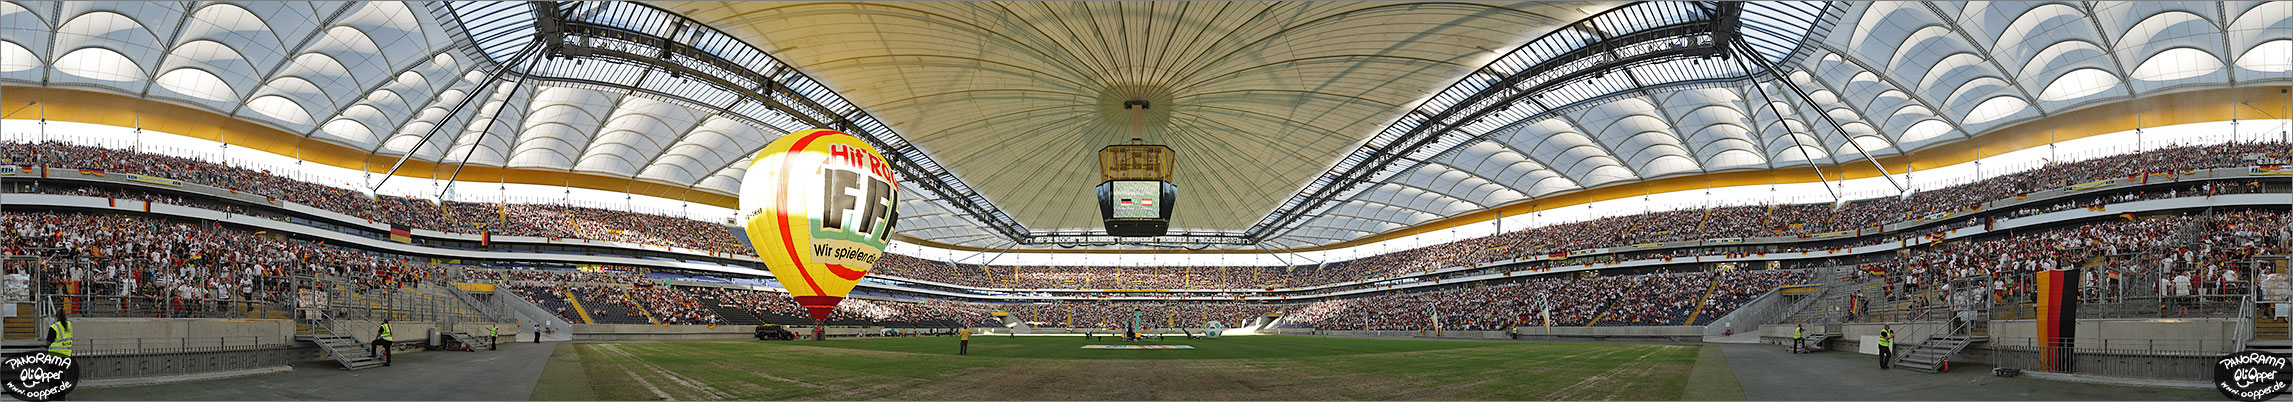 Panorama Frankfurt - Commerzbank Arena - p286 - (c) by Oliver Opper